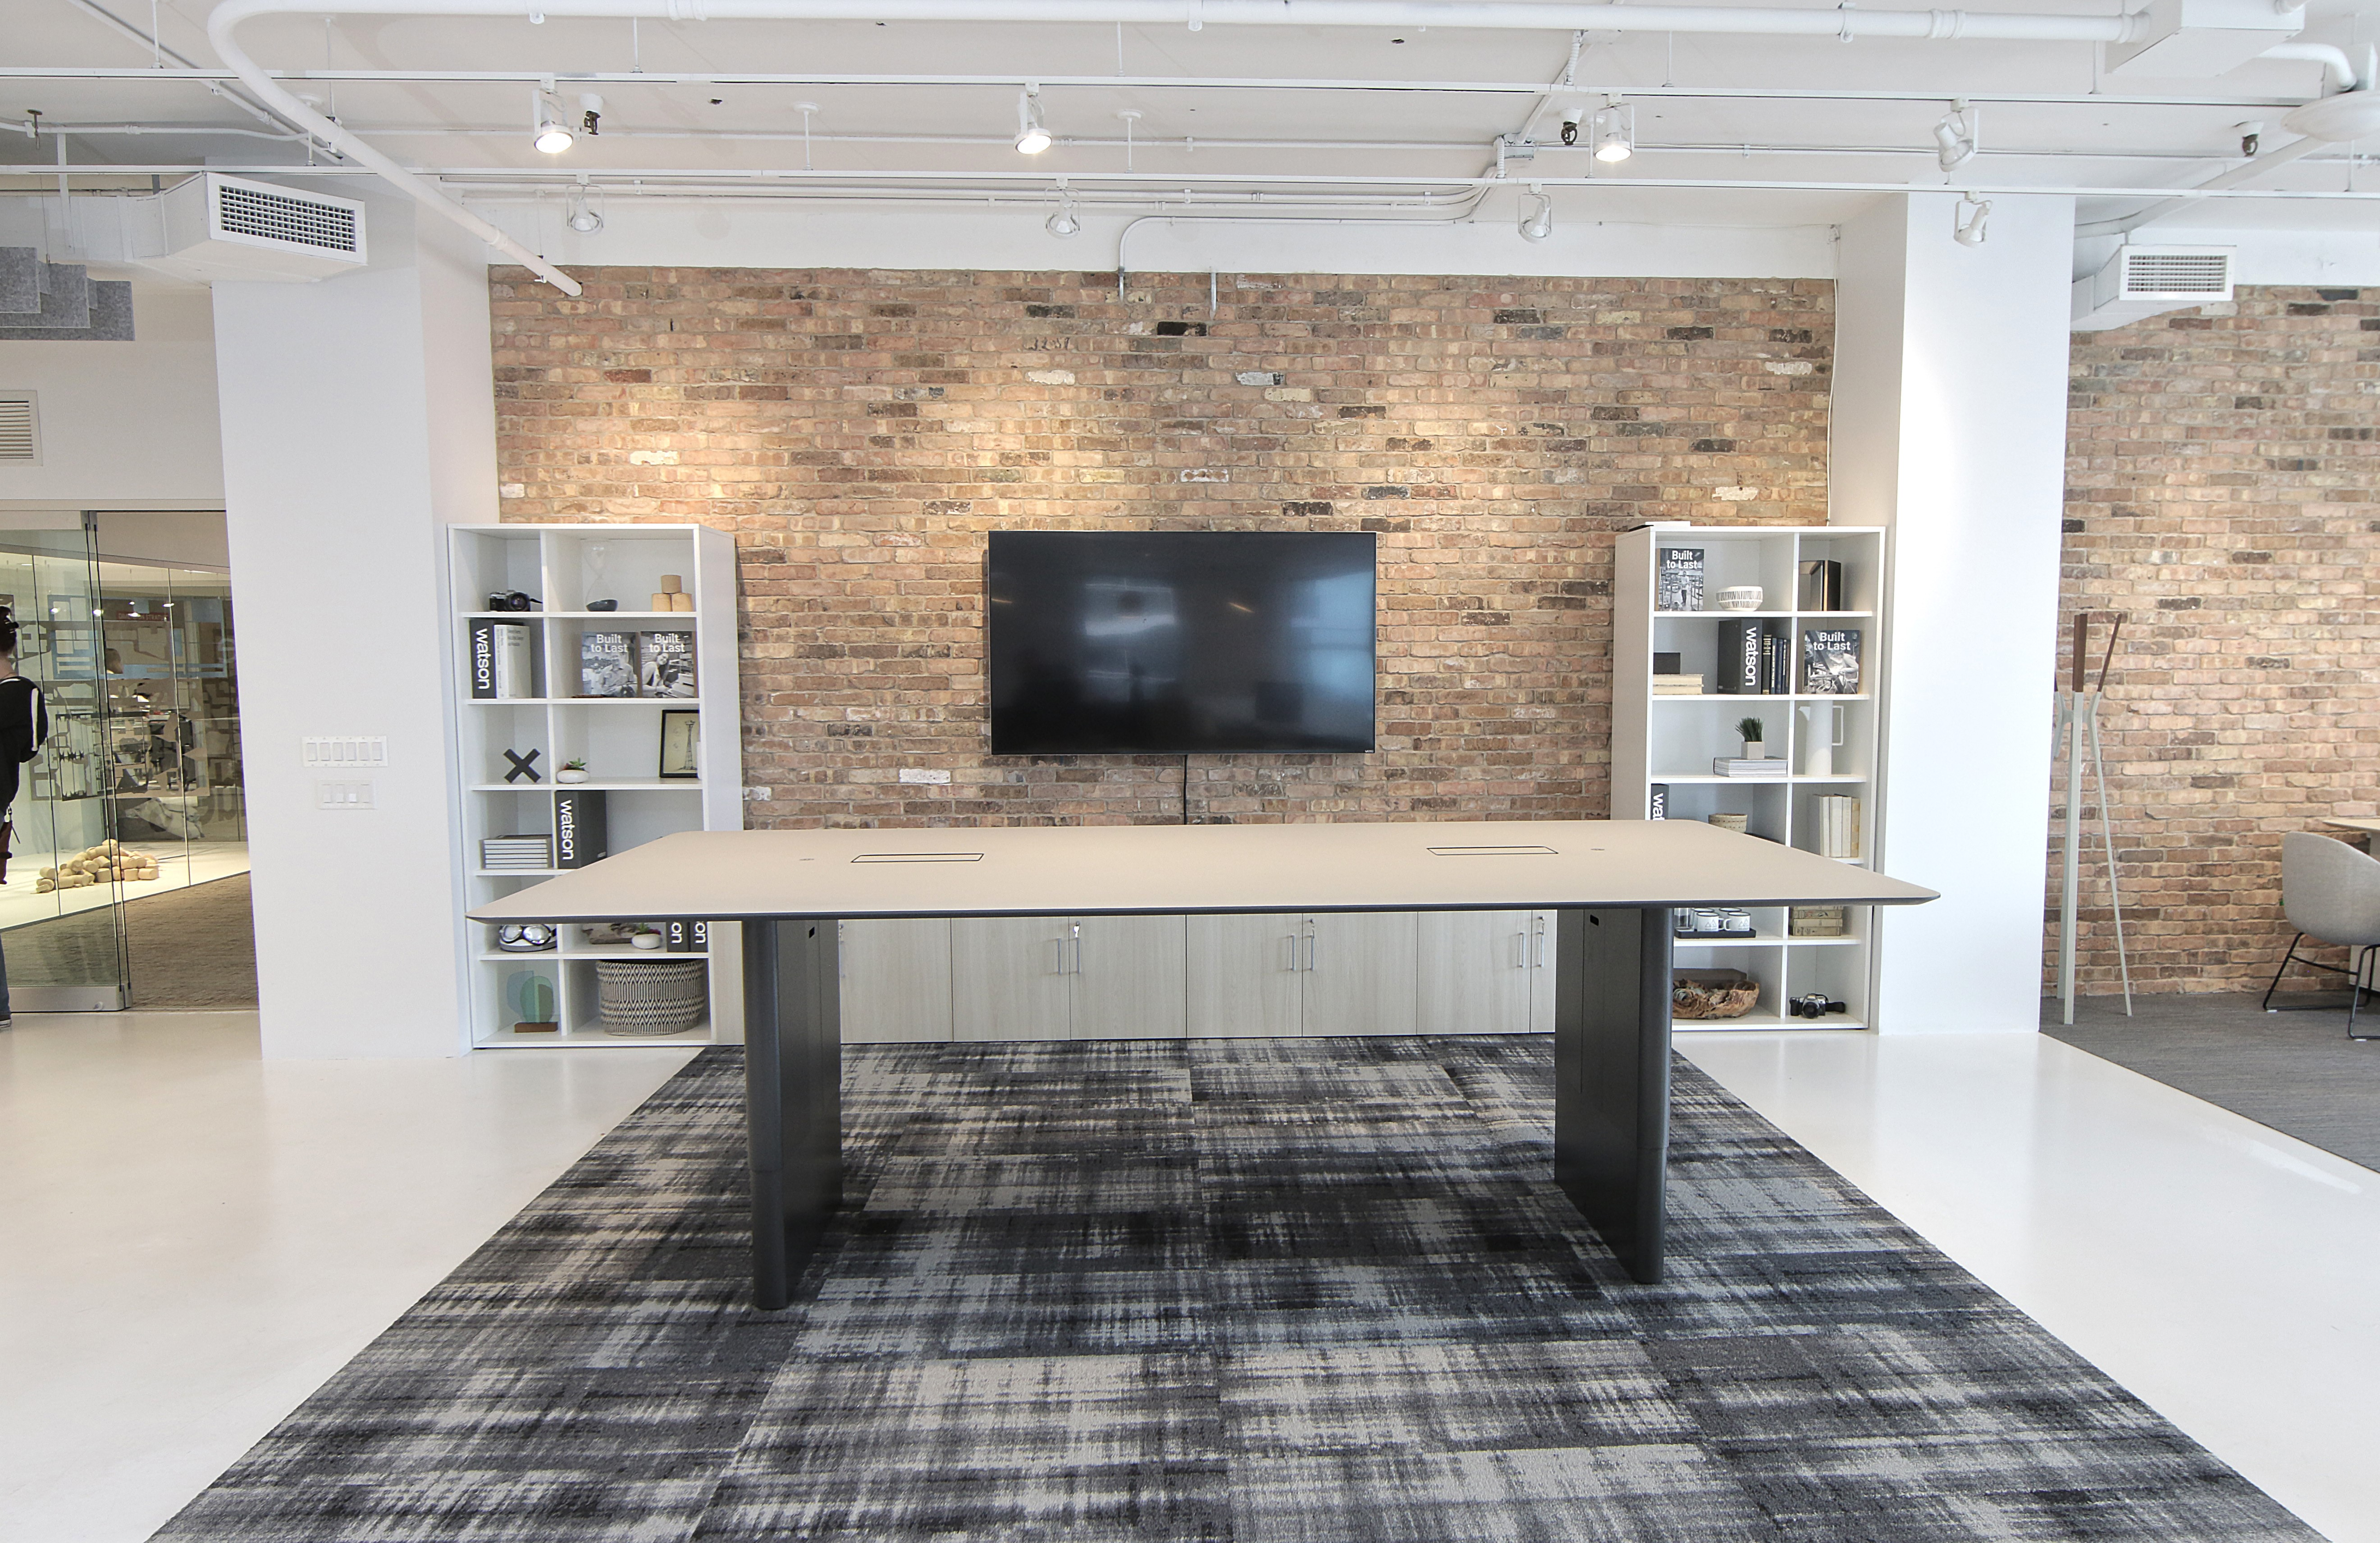 Porcelanosa Kitchen Cabinets Spain S Porcelanosa Covers Texas Cabinetry Store With Countertops